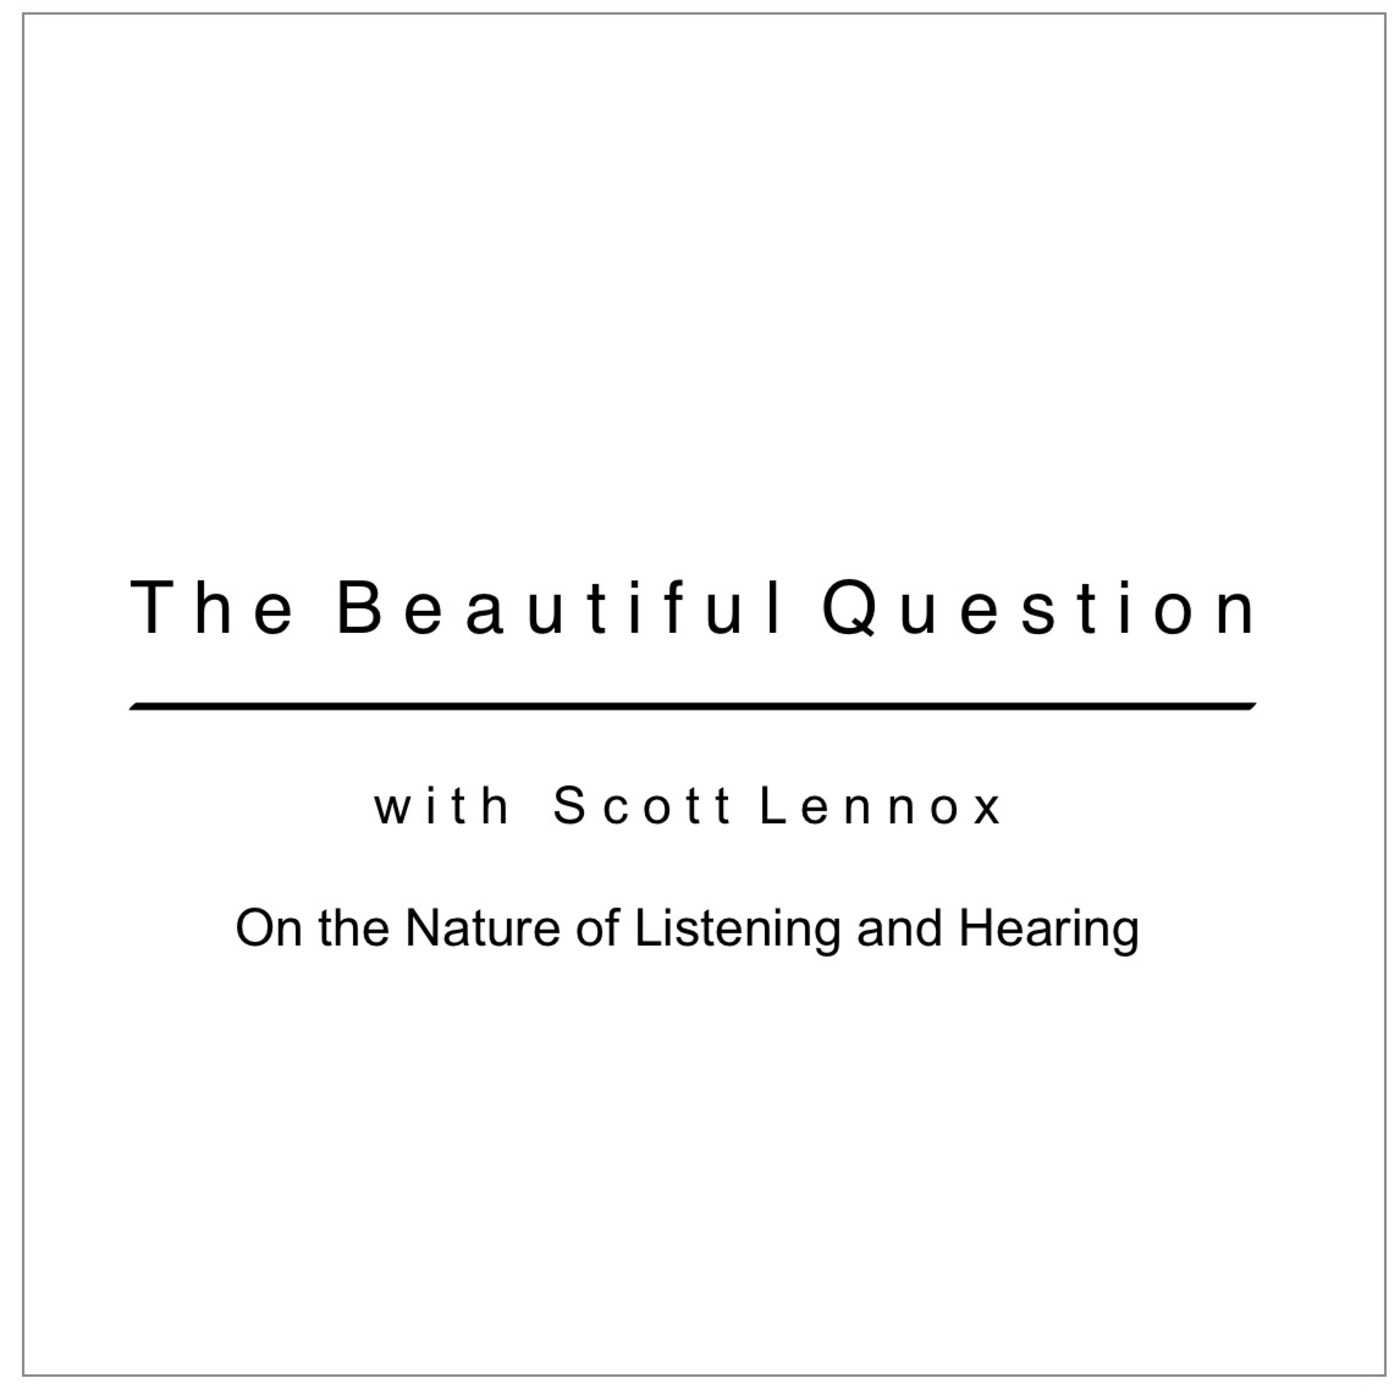 On the Nature of Listening and Hearing